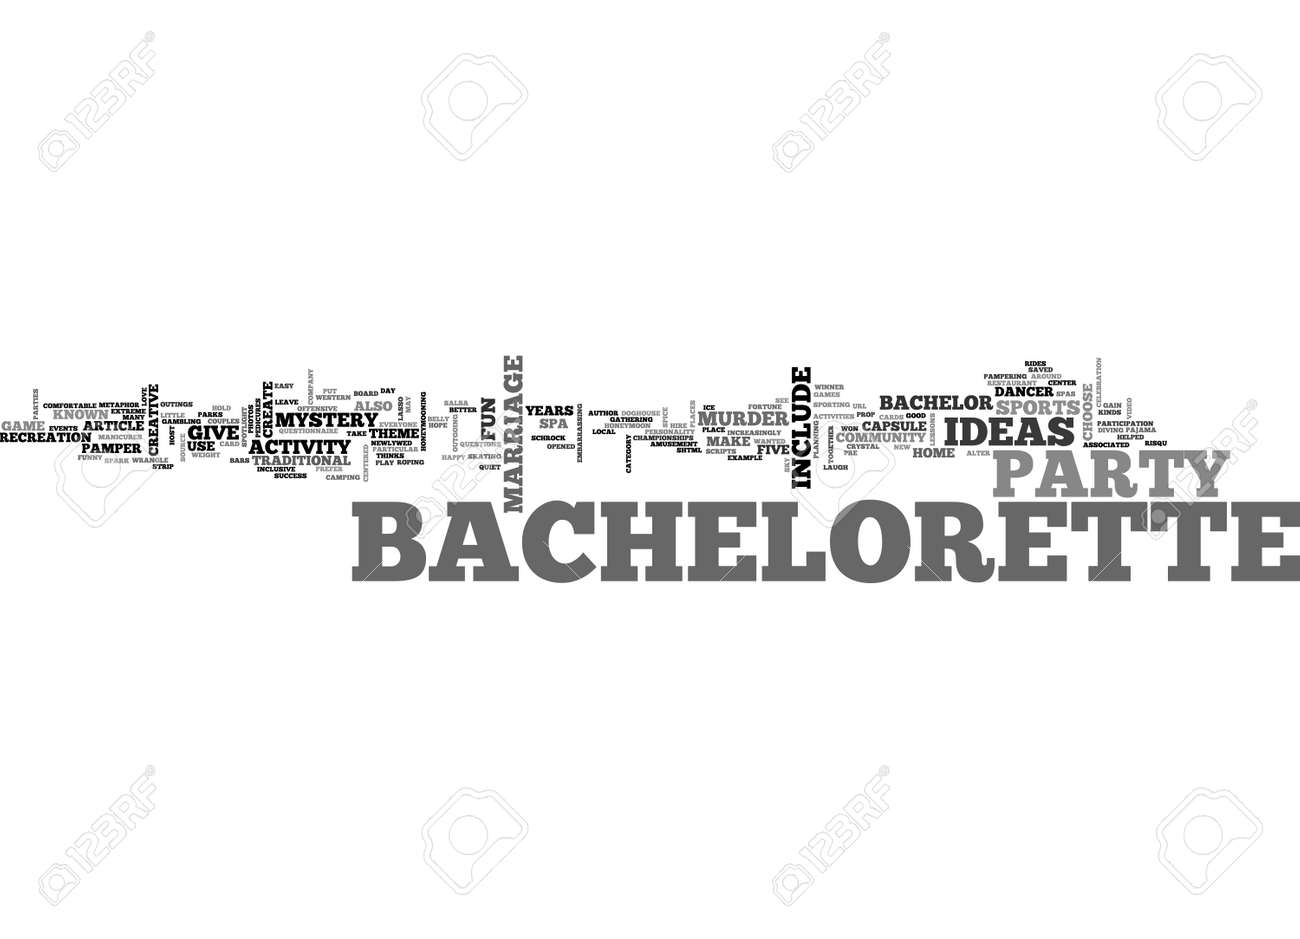 Bachelorette Party Ideas Staying Home. incredible bachelorette party ...